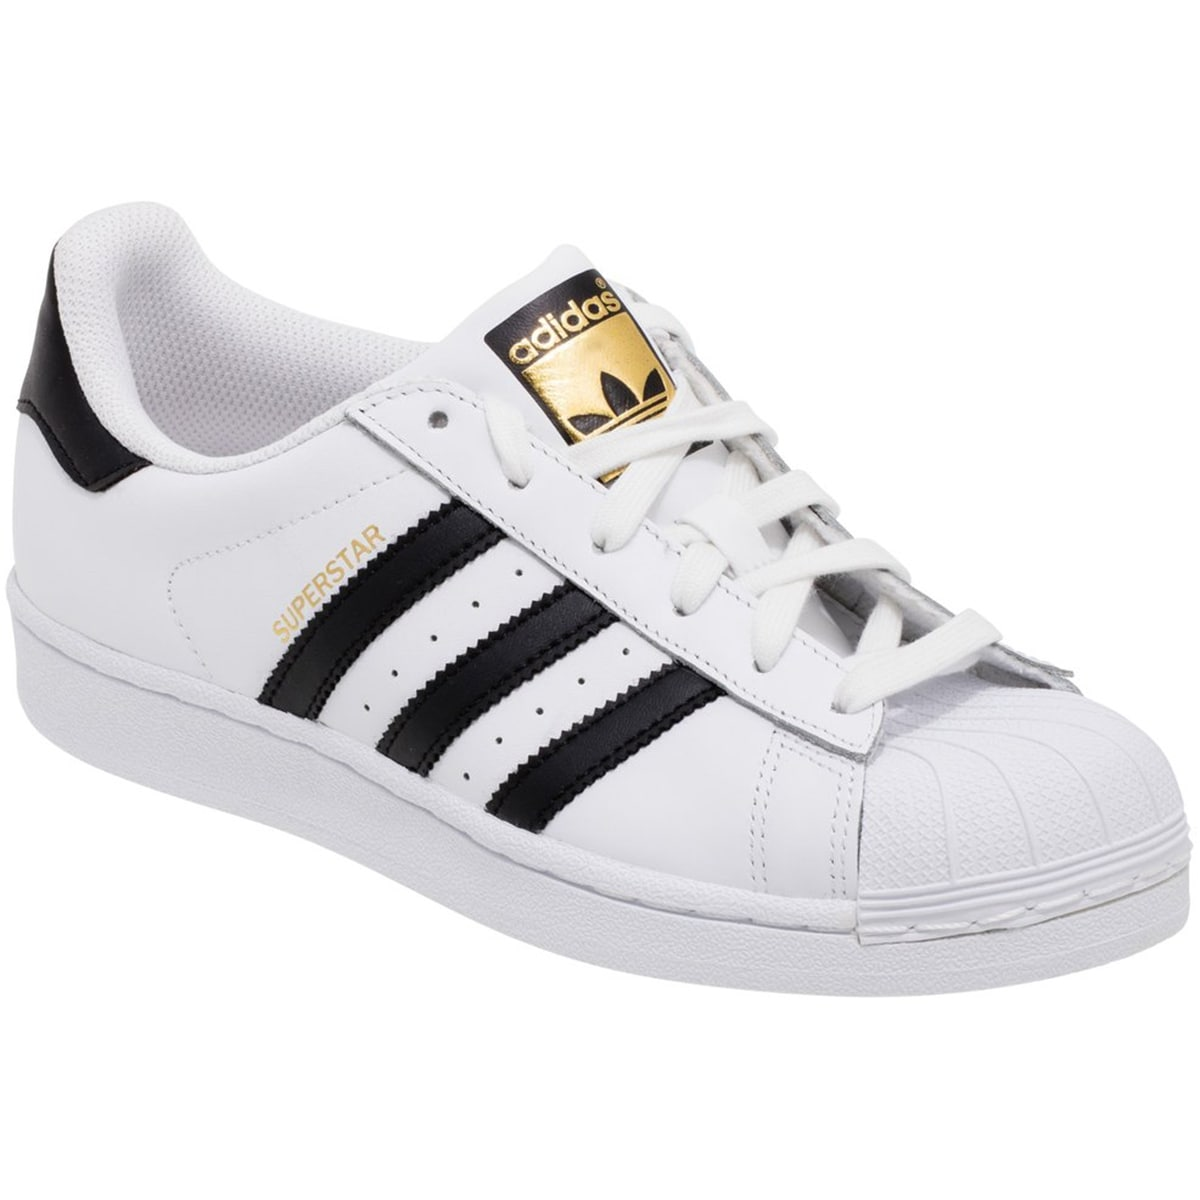 finest selection 448d1 dbbfe Shop Adidas Superstar Rubber Shell Toe Shoes - WhiteBlackWhite - Free  Shipping Today - Overstock - 25636506